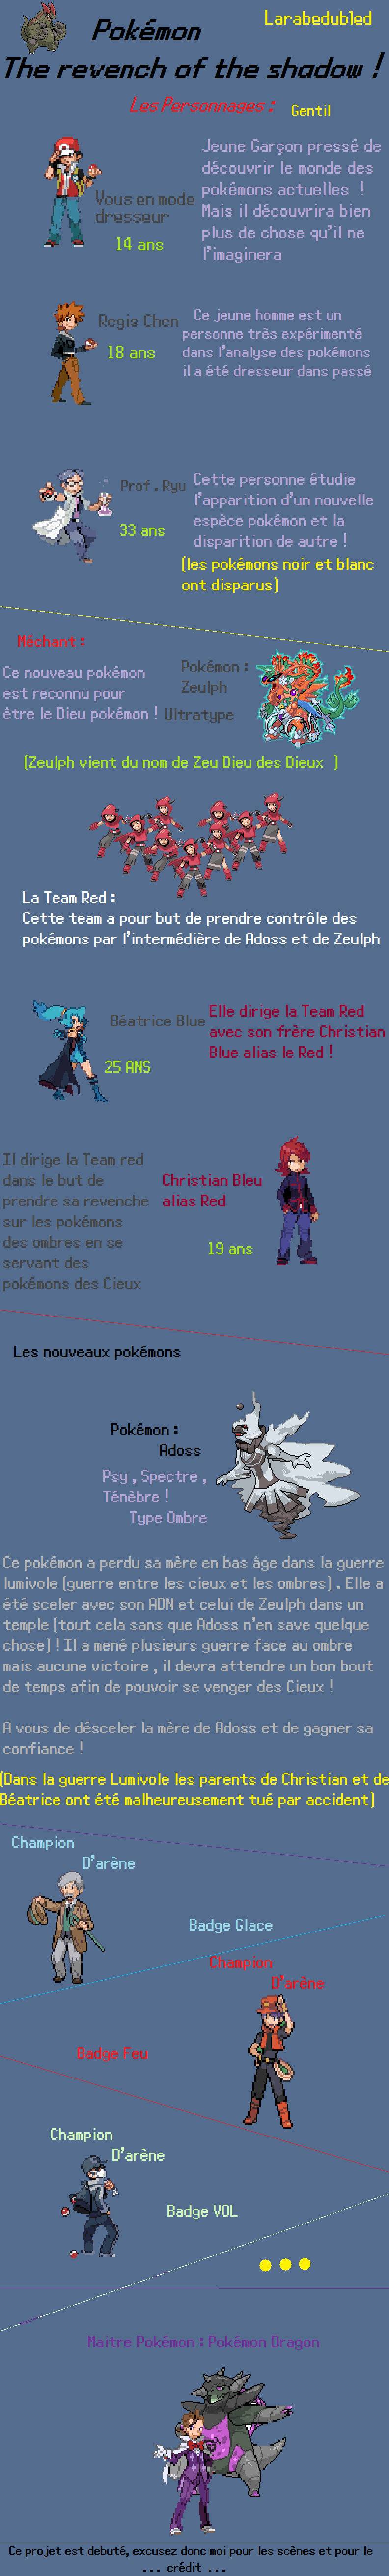 Pokémon the revench of the shadow Prasen10